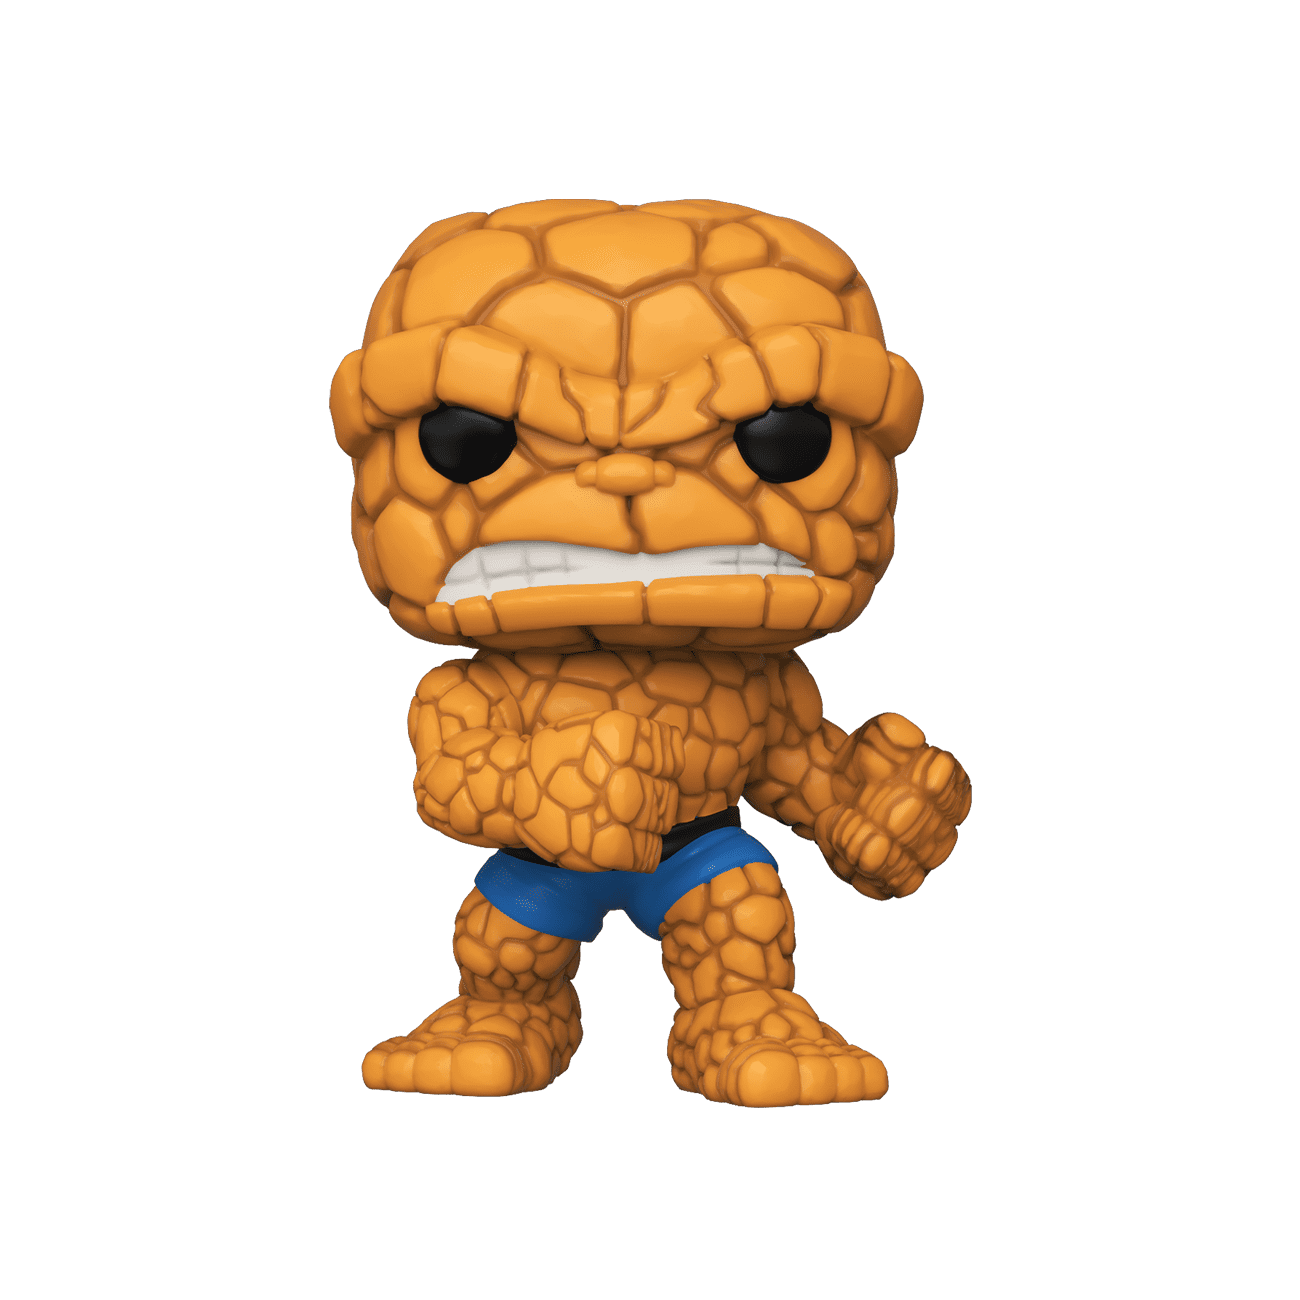 Fantastic Four-Fille Invisible translucide Pop Vinyl Figure *** Pré-commande ***